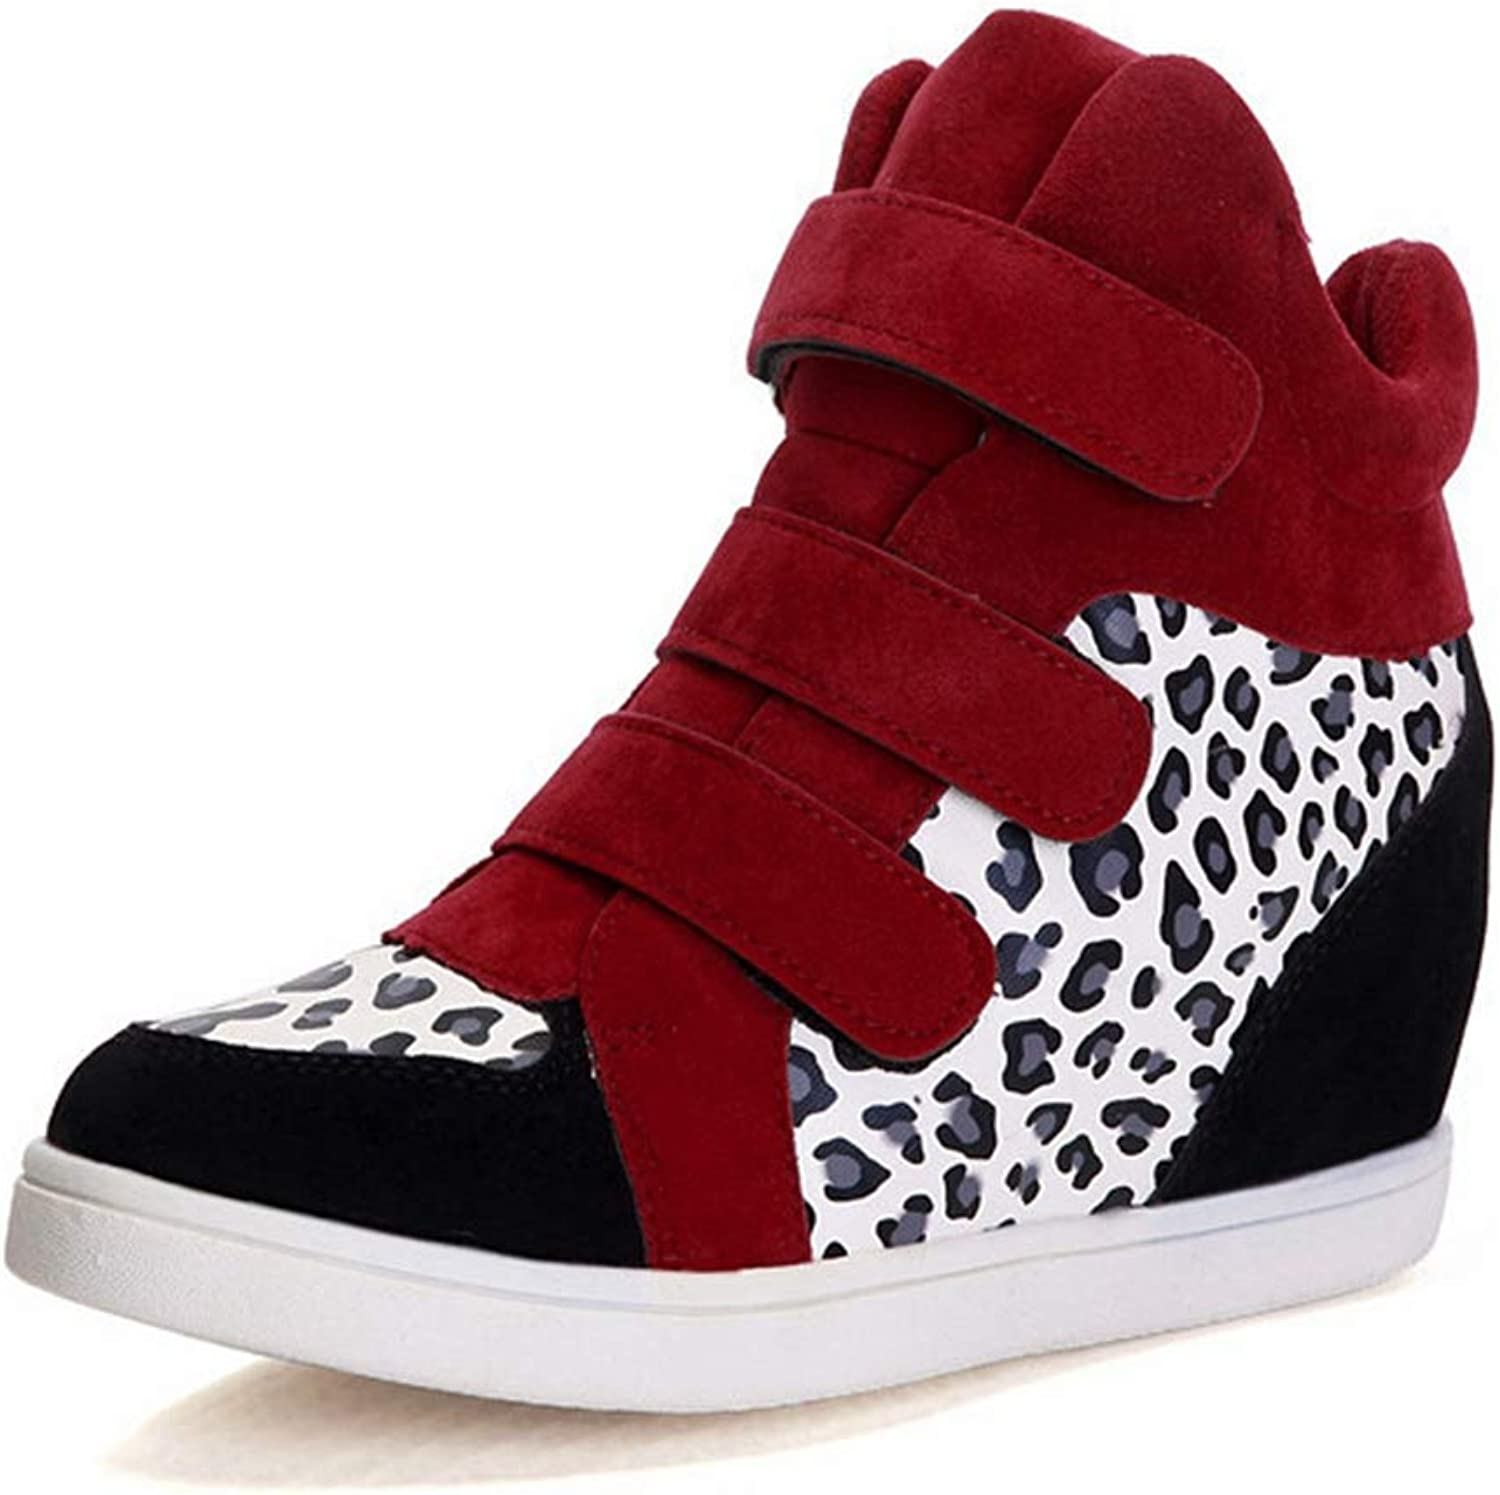 CYBLING Womens Hi Top Wedge Sneakers Fashion Leopard Hidden Heel Platform Fitness Trainer Casual shoes